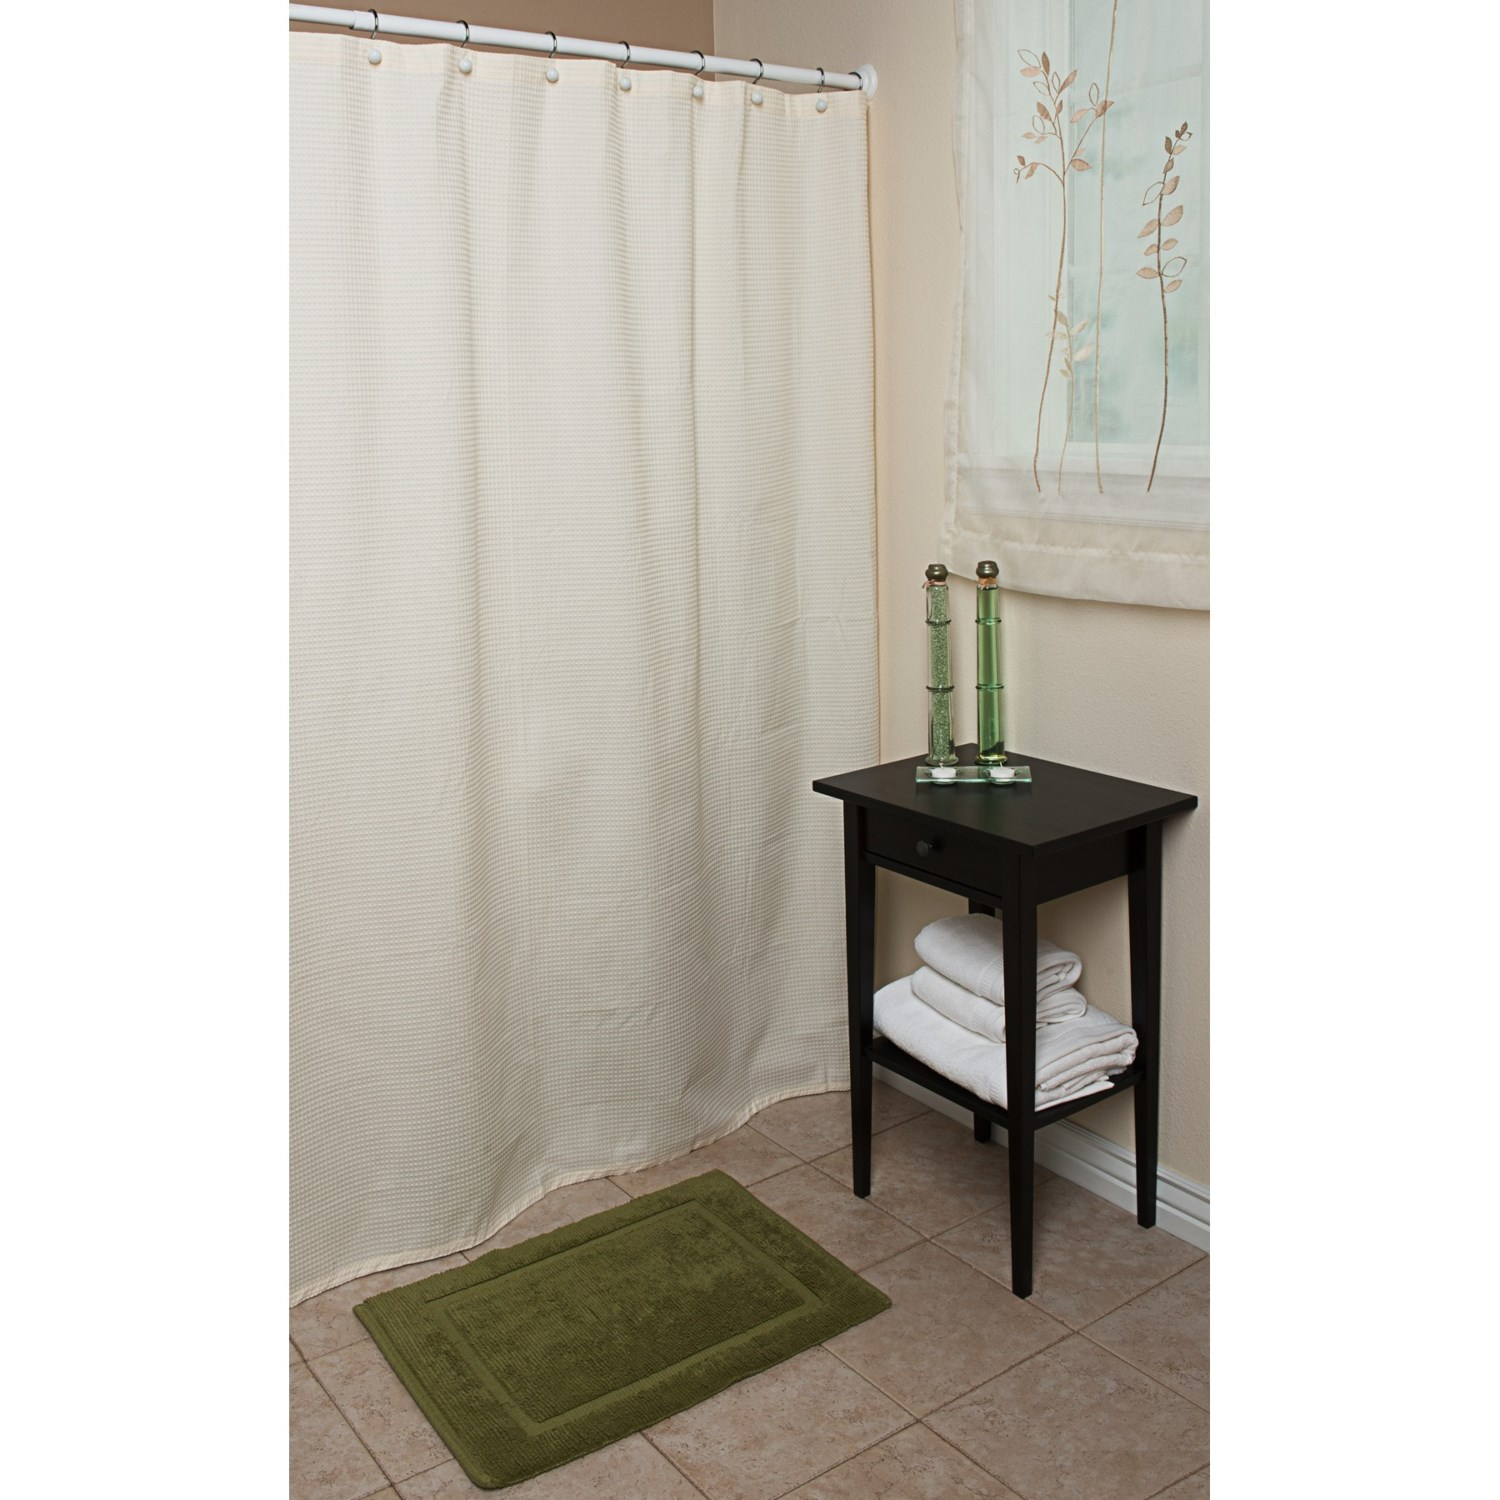 "Espalma Waffle Weave Shower Curtain - 72x72"", Cotton - Save 49"